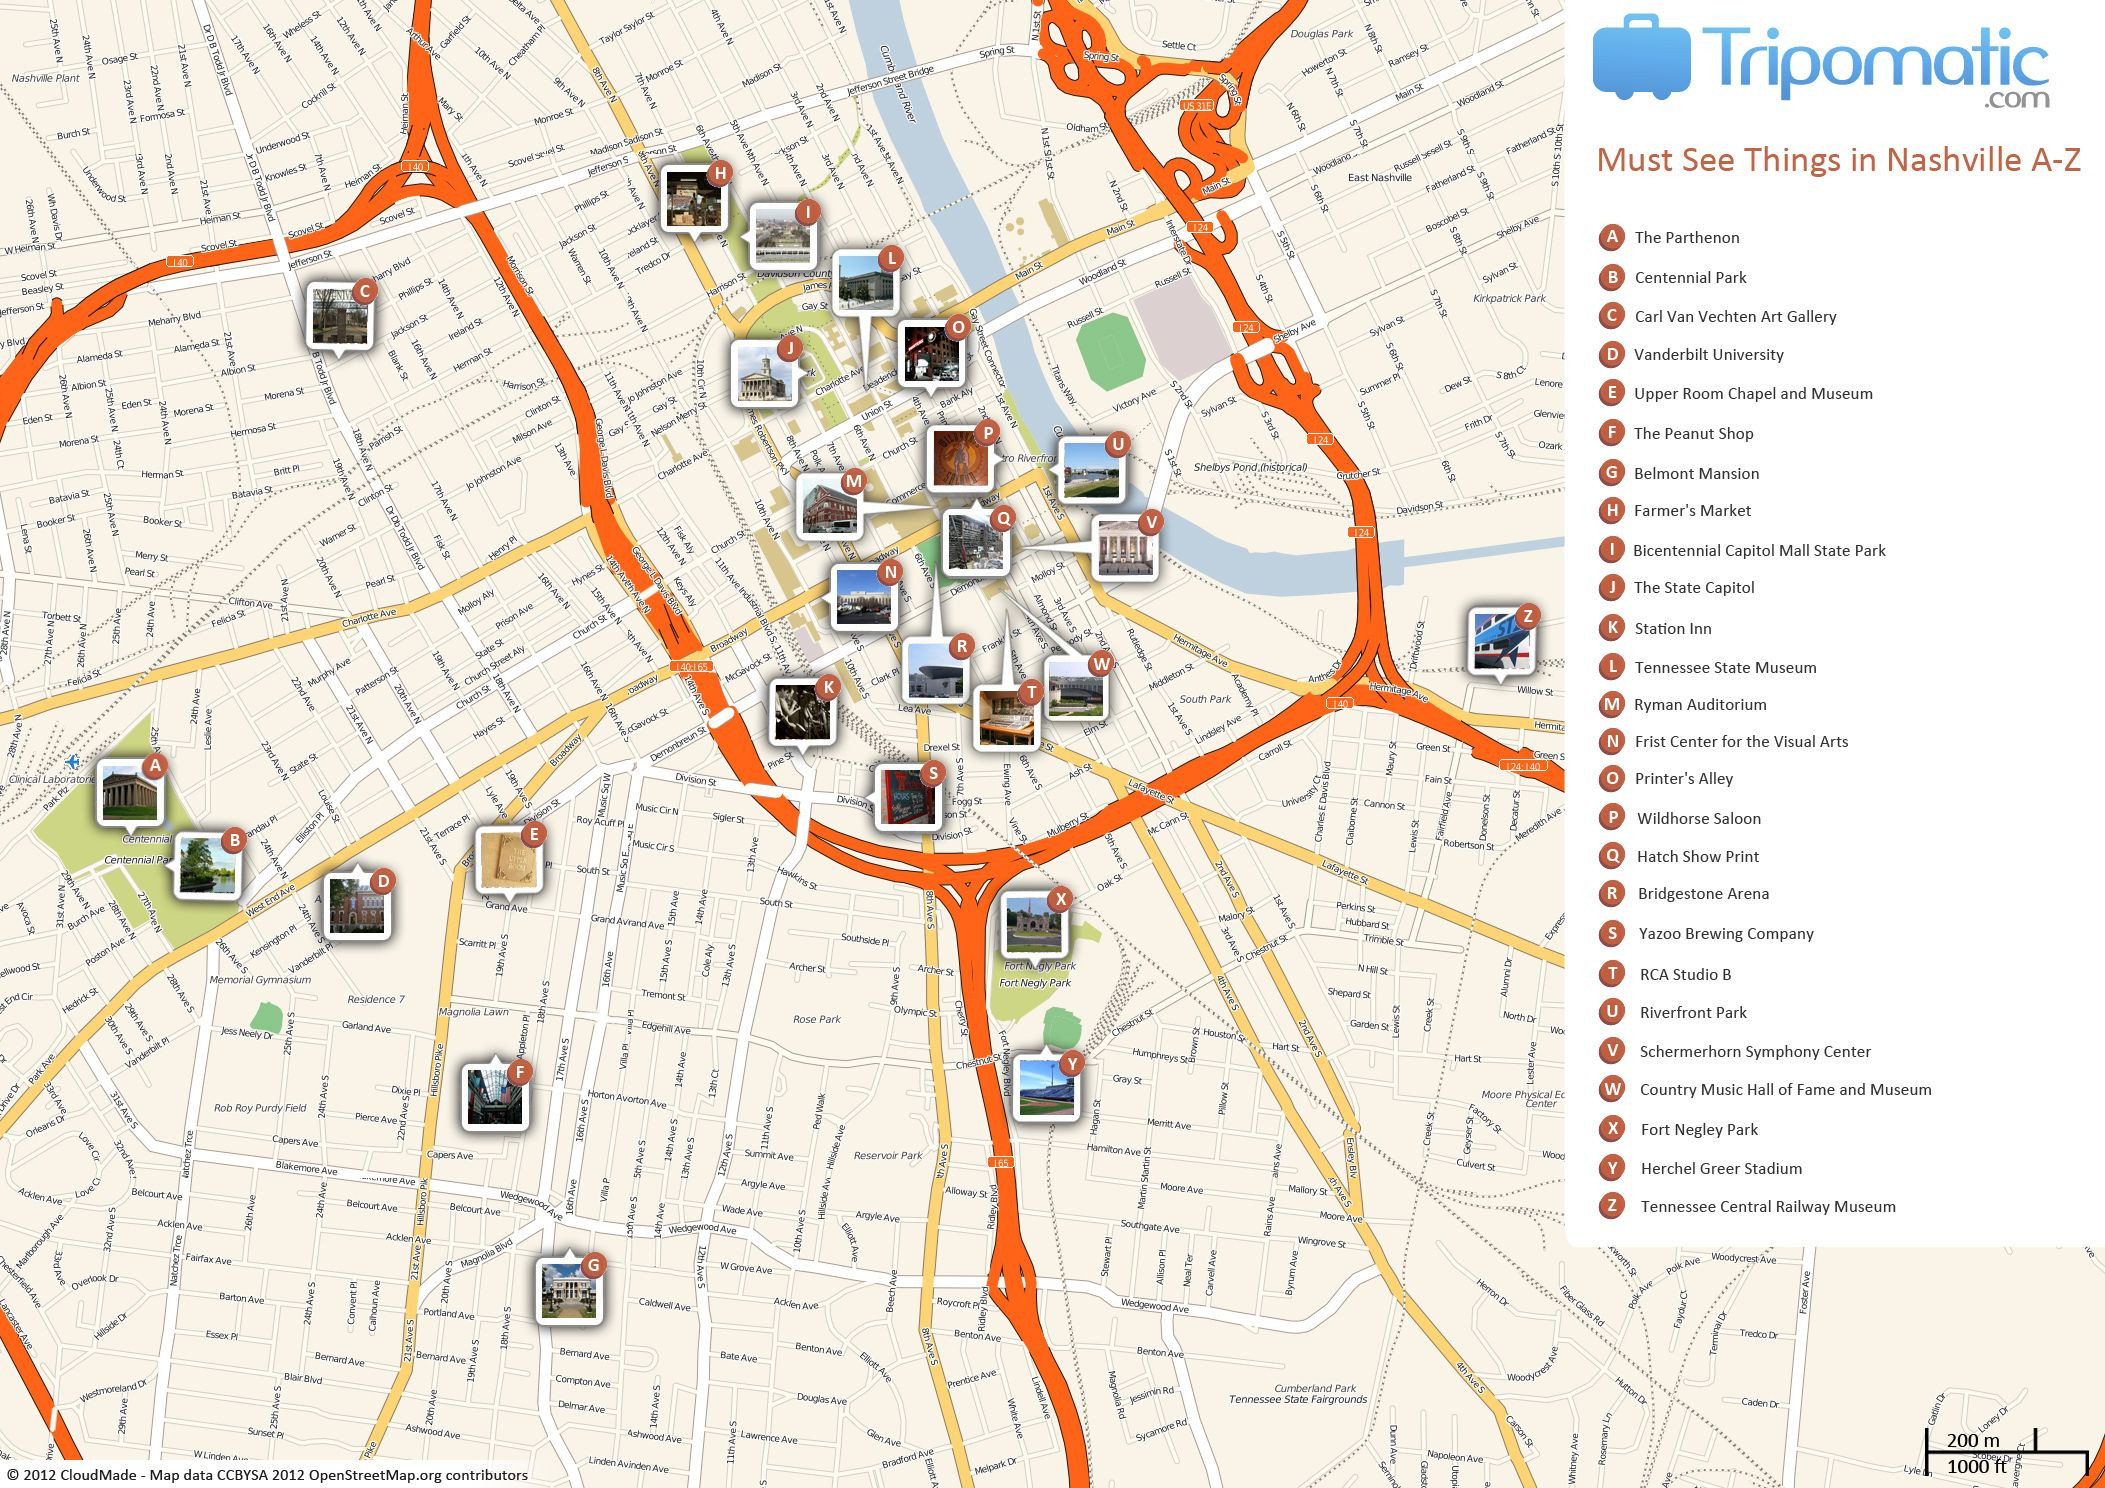 Free Printable Map of Nashville attractions